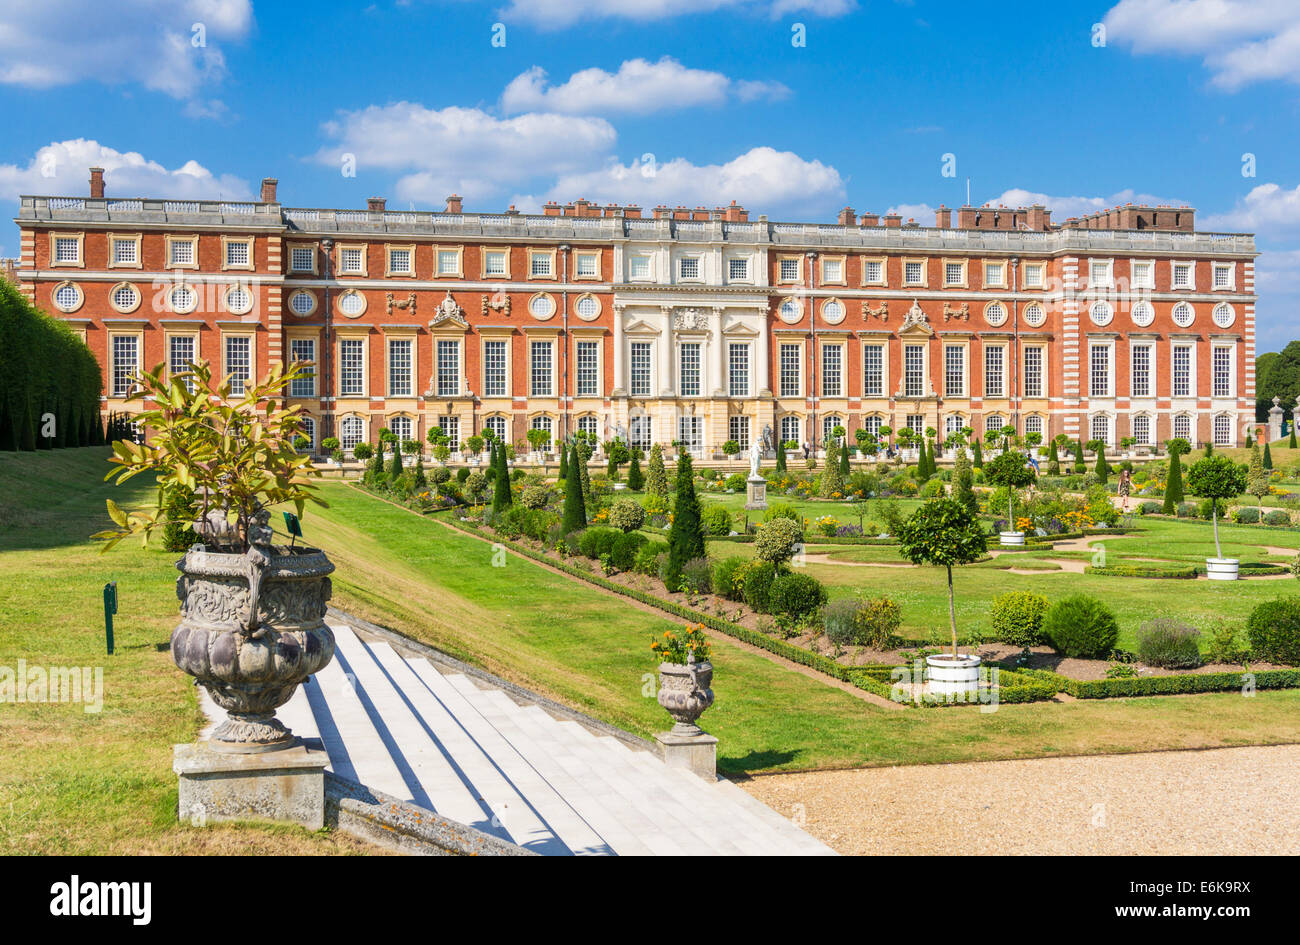 Hampton Court Palace South Front and Privy Garden London England UK GB EU Europe - Stock Image